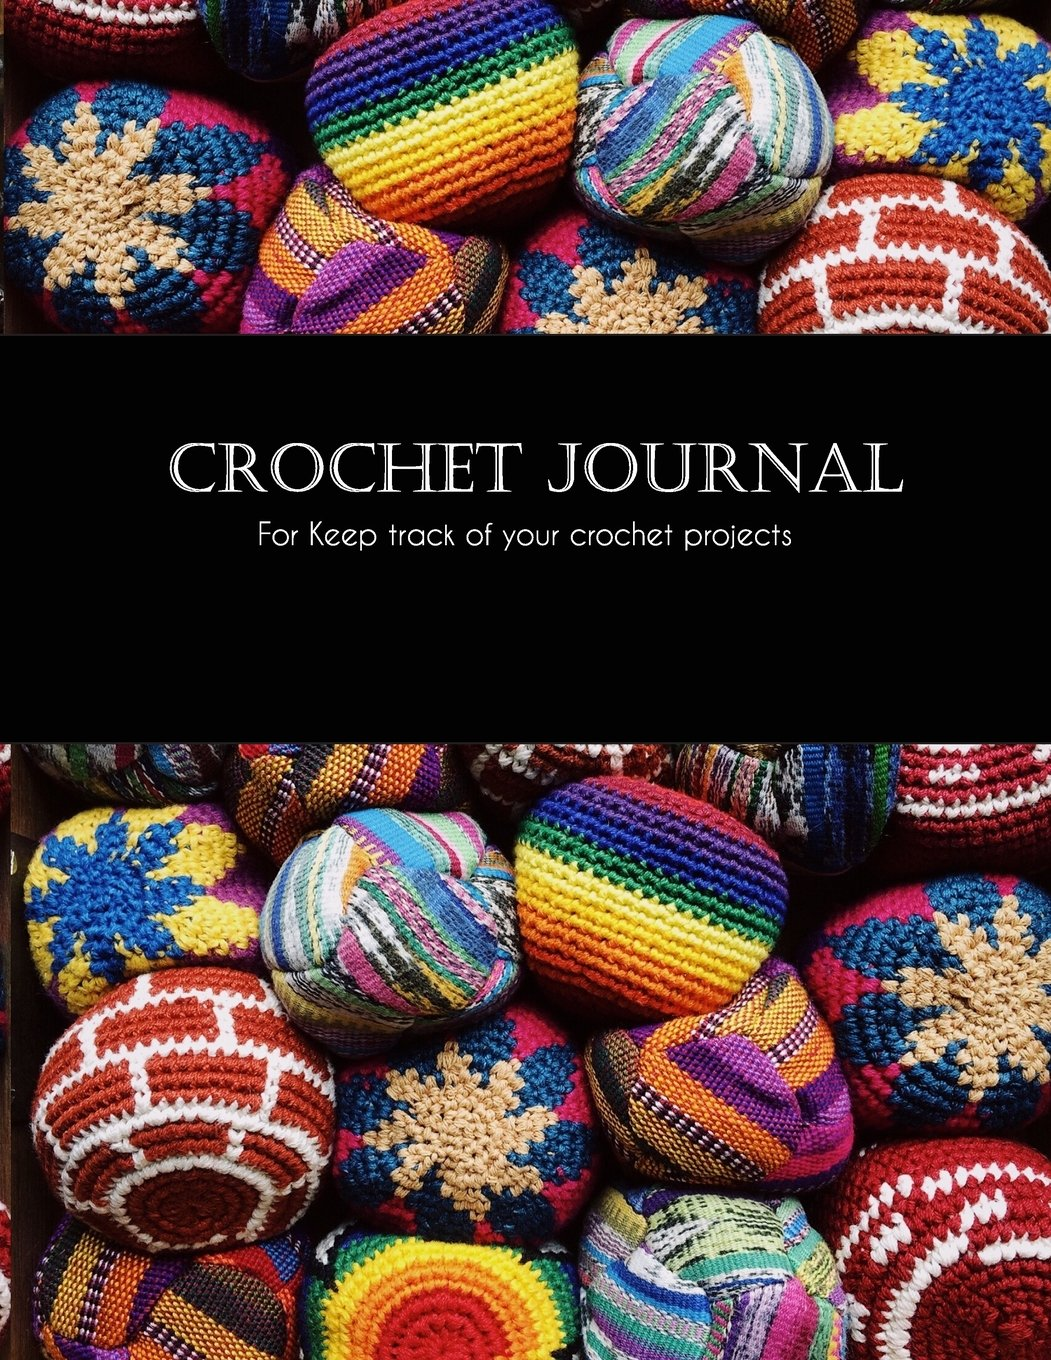 Crochet Journal for Keep track of your crochet projects: Organizing all of your crochet designs and projects